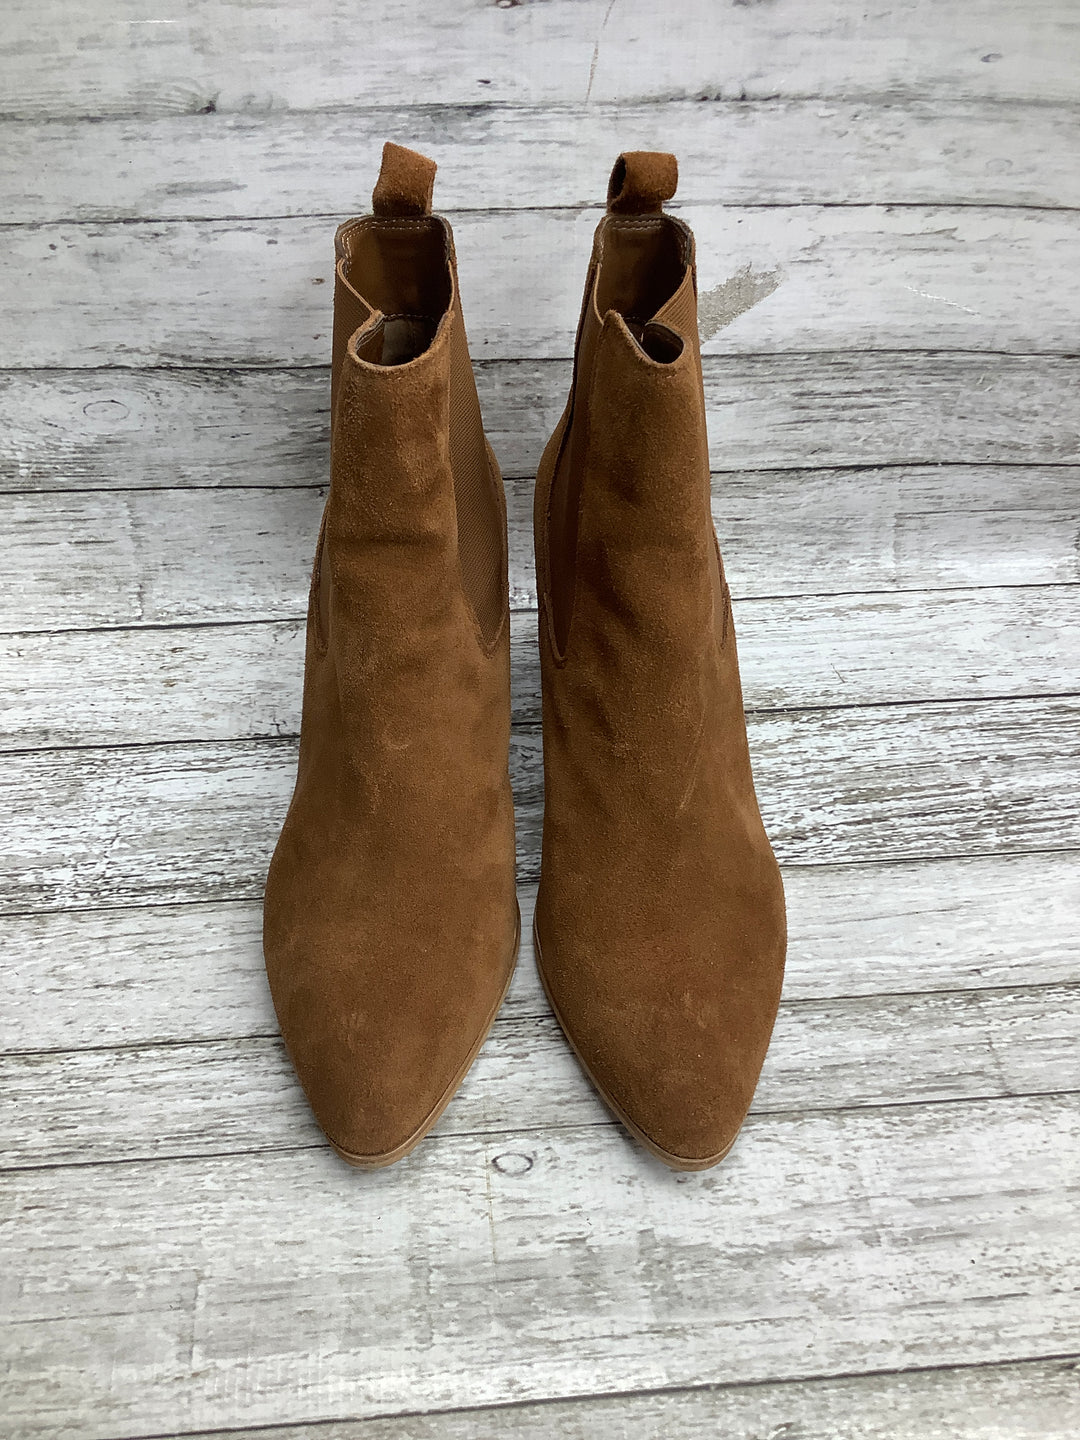 Primary Photo - brand: steve madden , style: boots ankle , color: tan , size: 11 , sku: 105-5023-2963